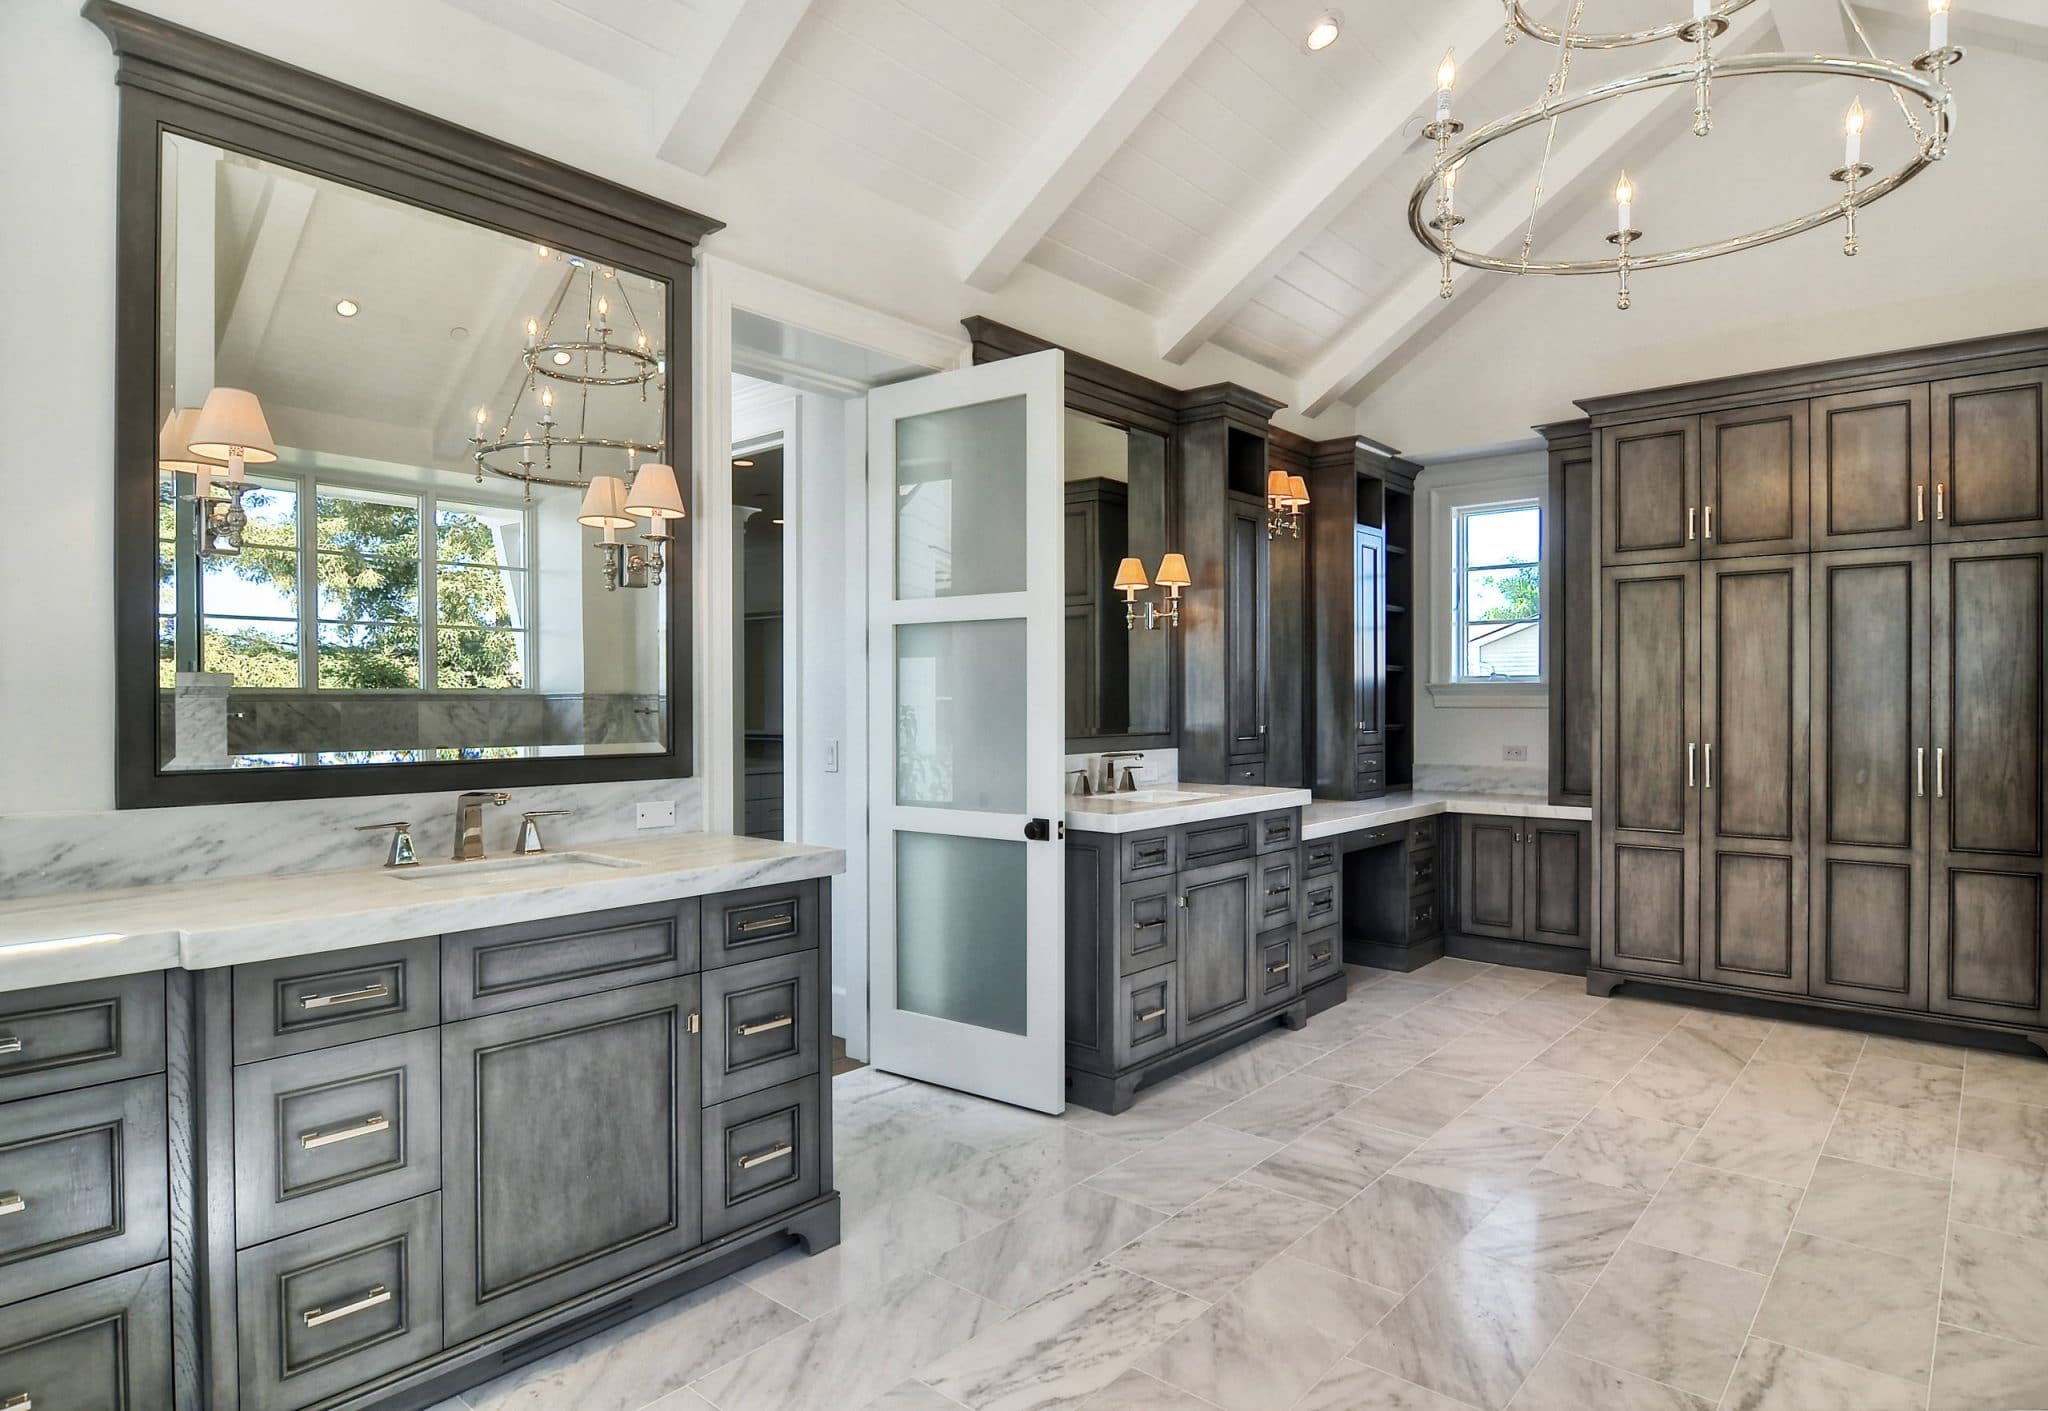 Hardware Of The Vanity Best Online Cabinets